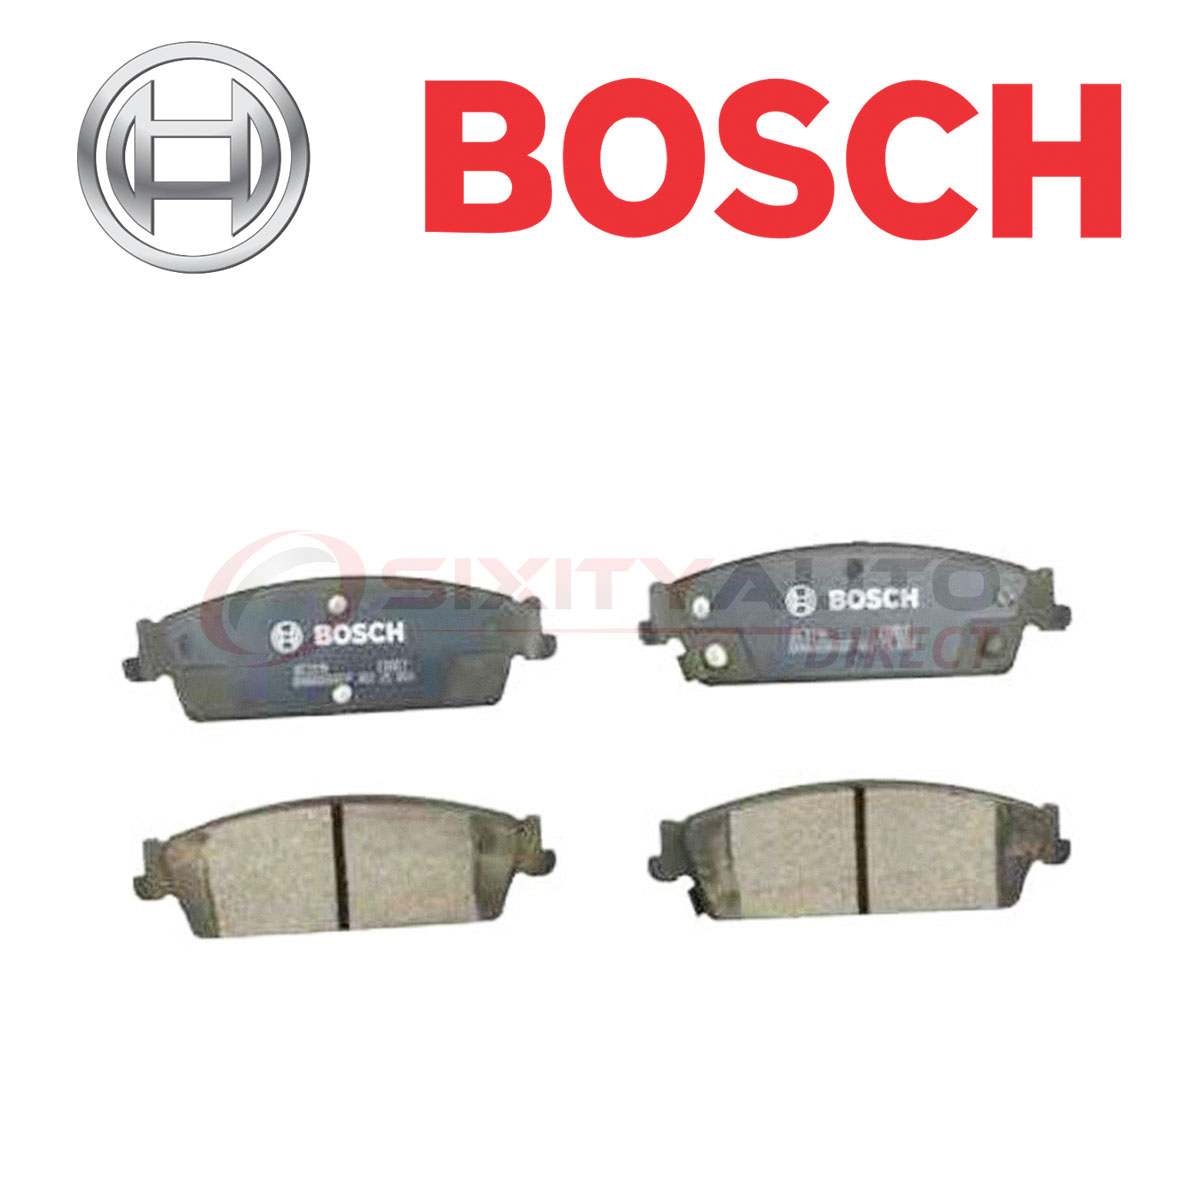 Bosch QuietCast Ceramic Brake Pads For 2007-2014 Cadillac